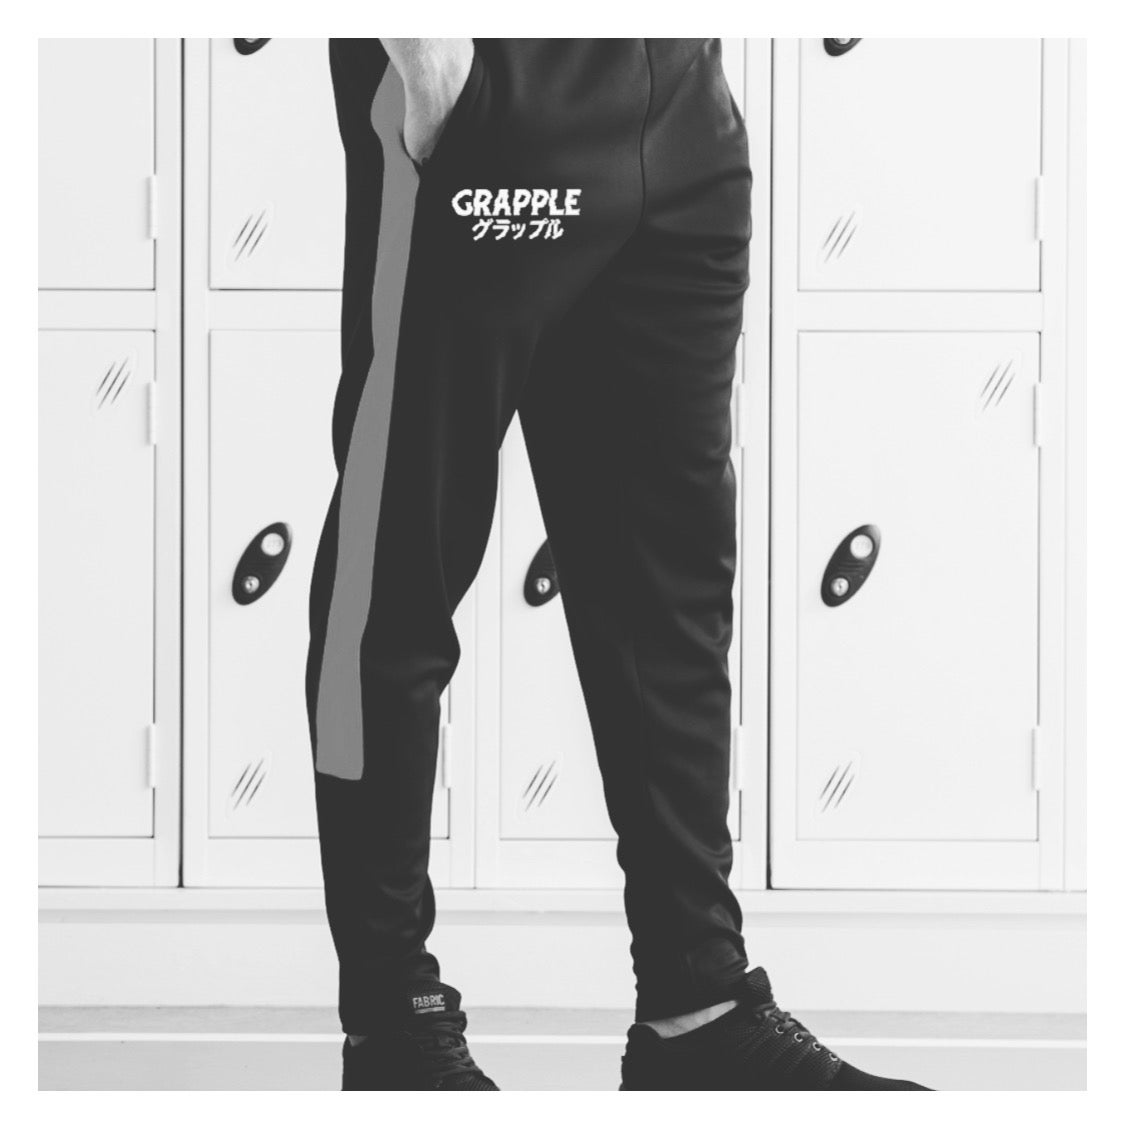 Image of Grapple Team Track Pants